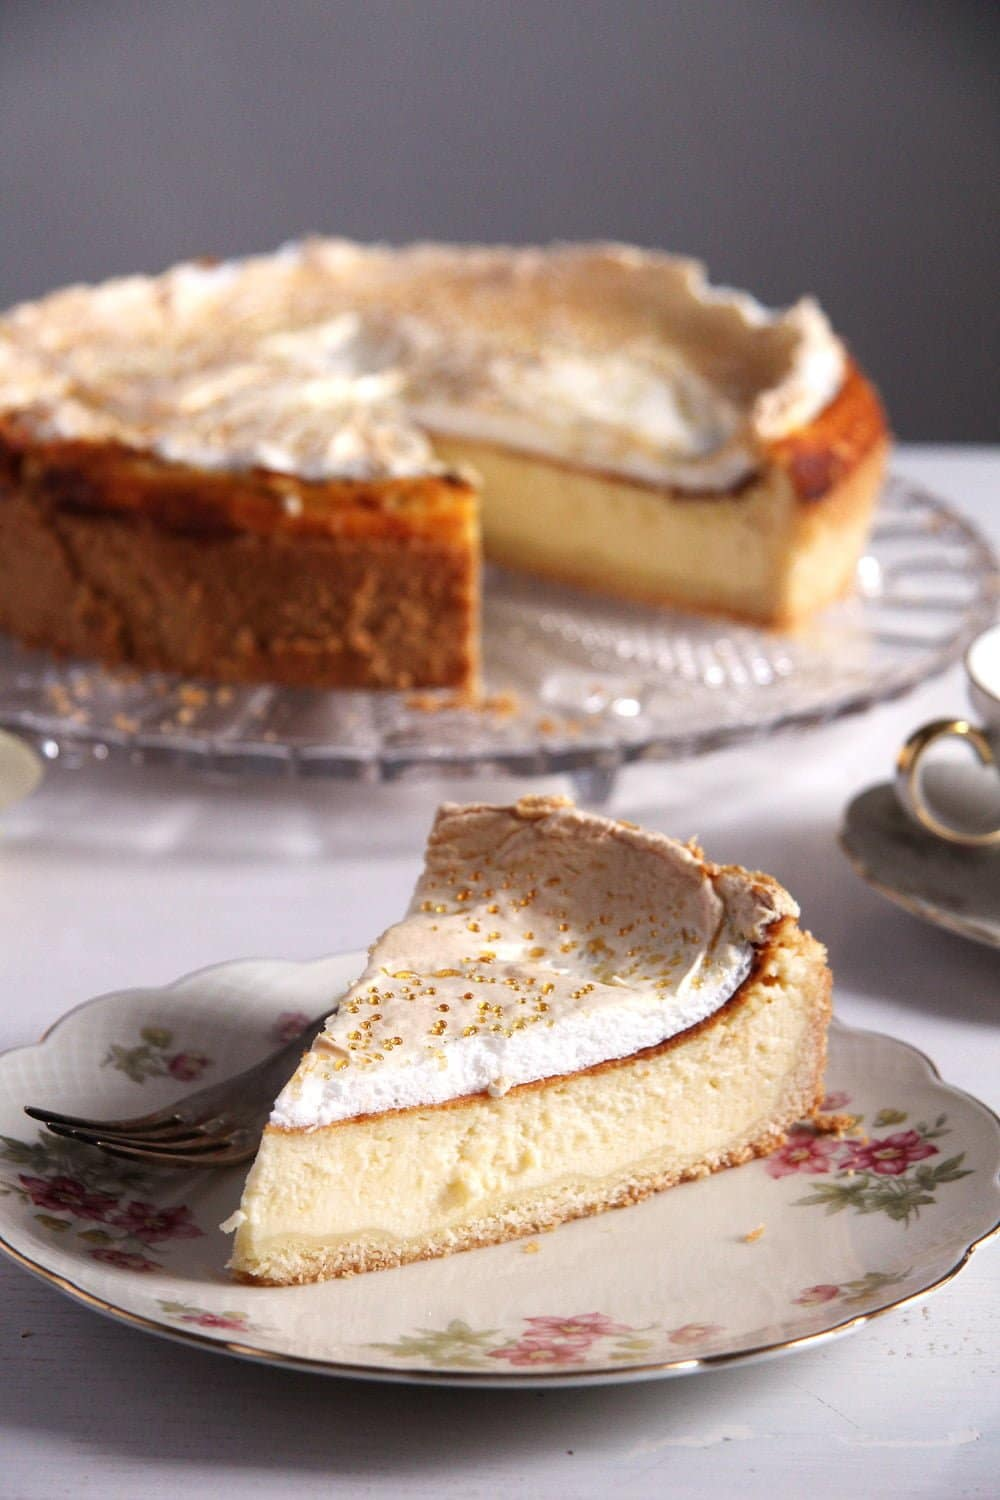 german cheesecake k%C3%A4se German Cheesecake with Low Fat Quark and Meringue Topping